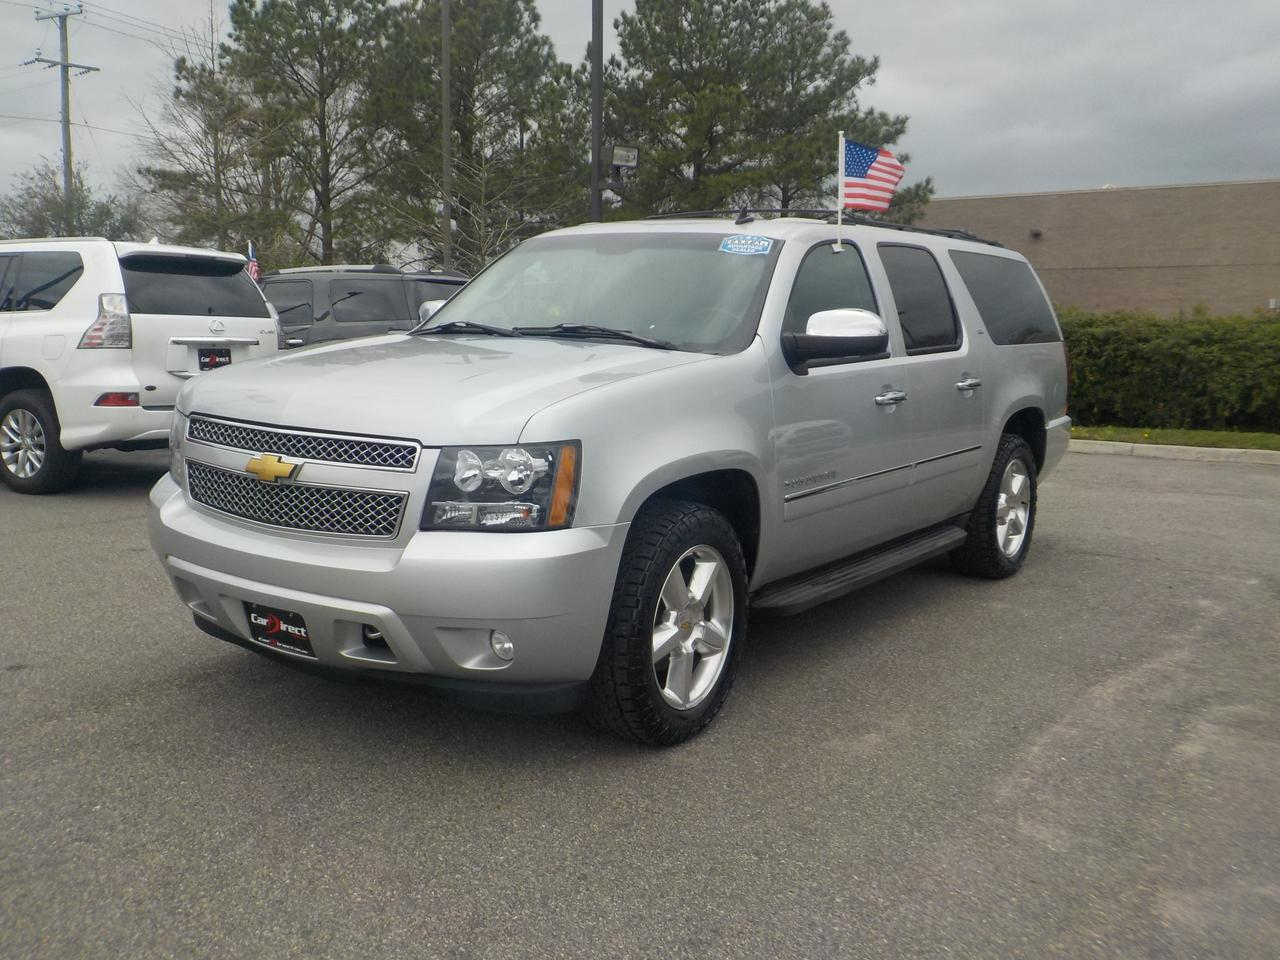 2013 CHEVROLET SUBURBAN LTZ 4X4, LEATHER, DVD, NAVI, 3RD ROW SEAT, BOSE PREMIUM SOUND, TOW PKG, REMOTE START,  LOW MILES! Virginia Beach VA